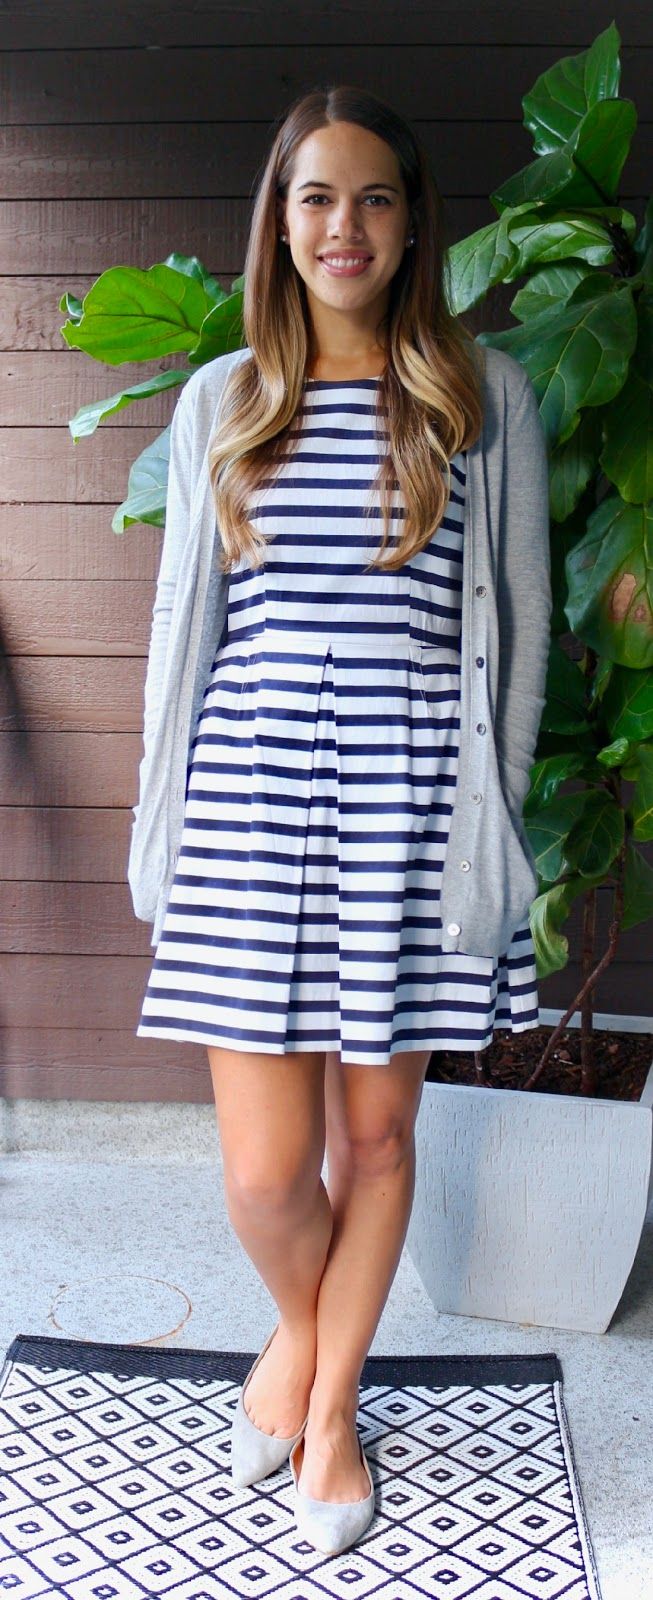 Jules in Flats - Striped Fit and Flare Dress (Business Casual Fall Workwear on a Budget)